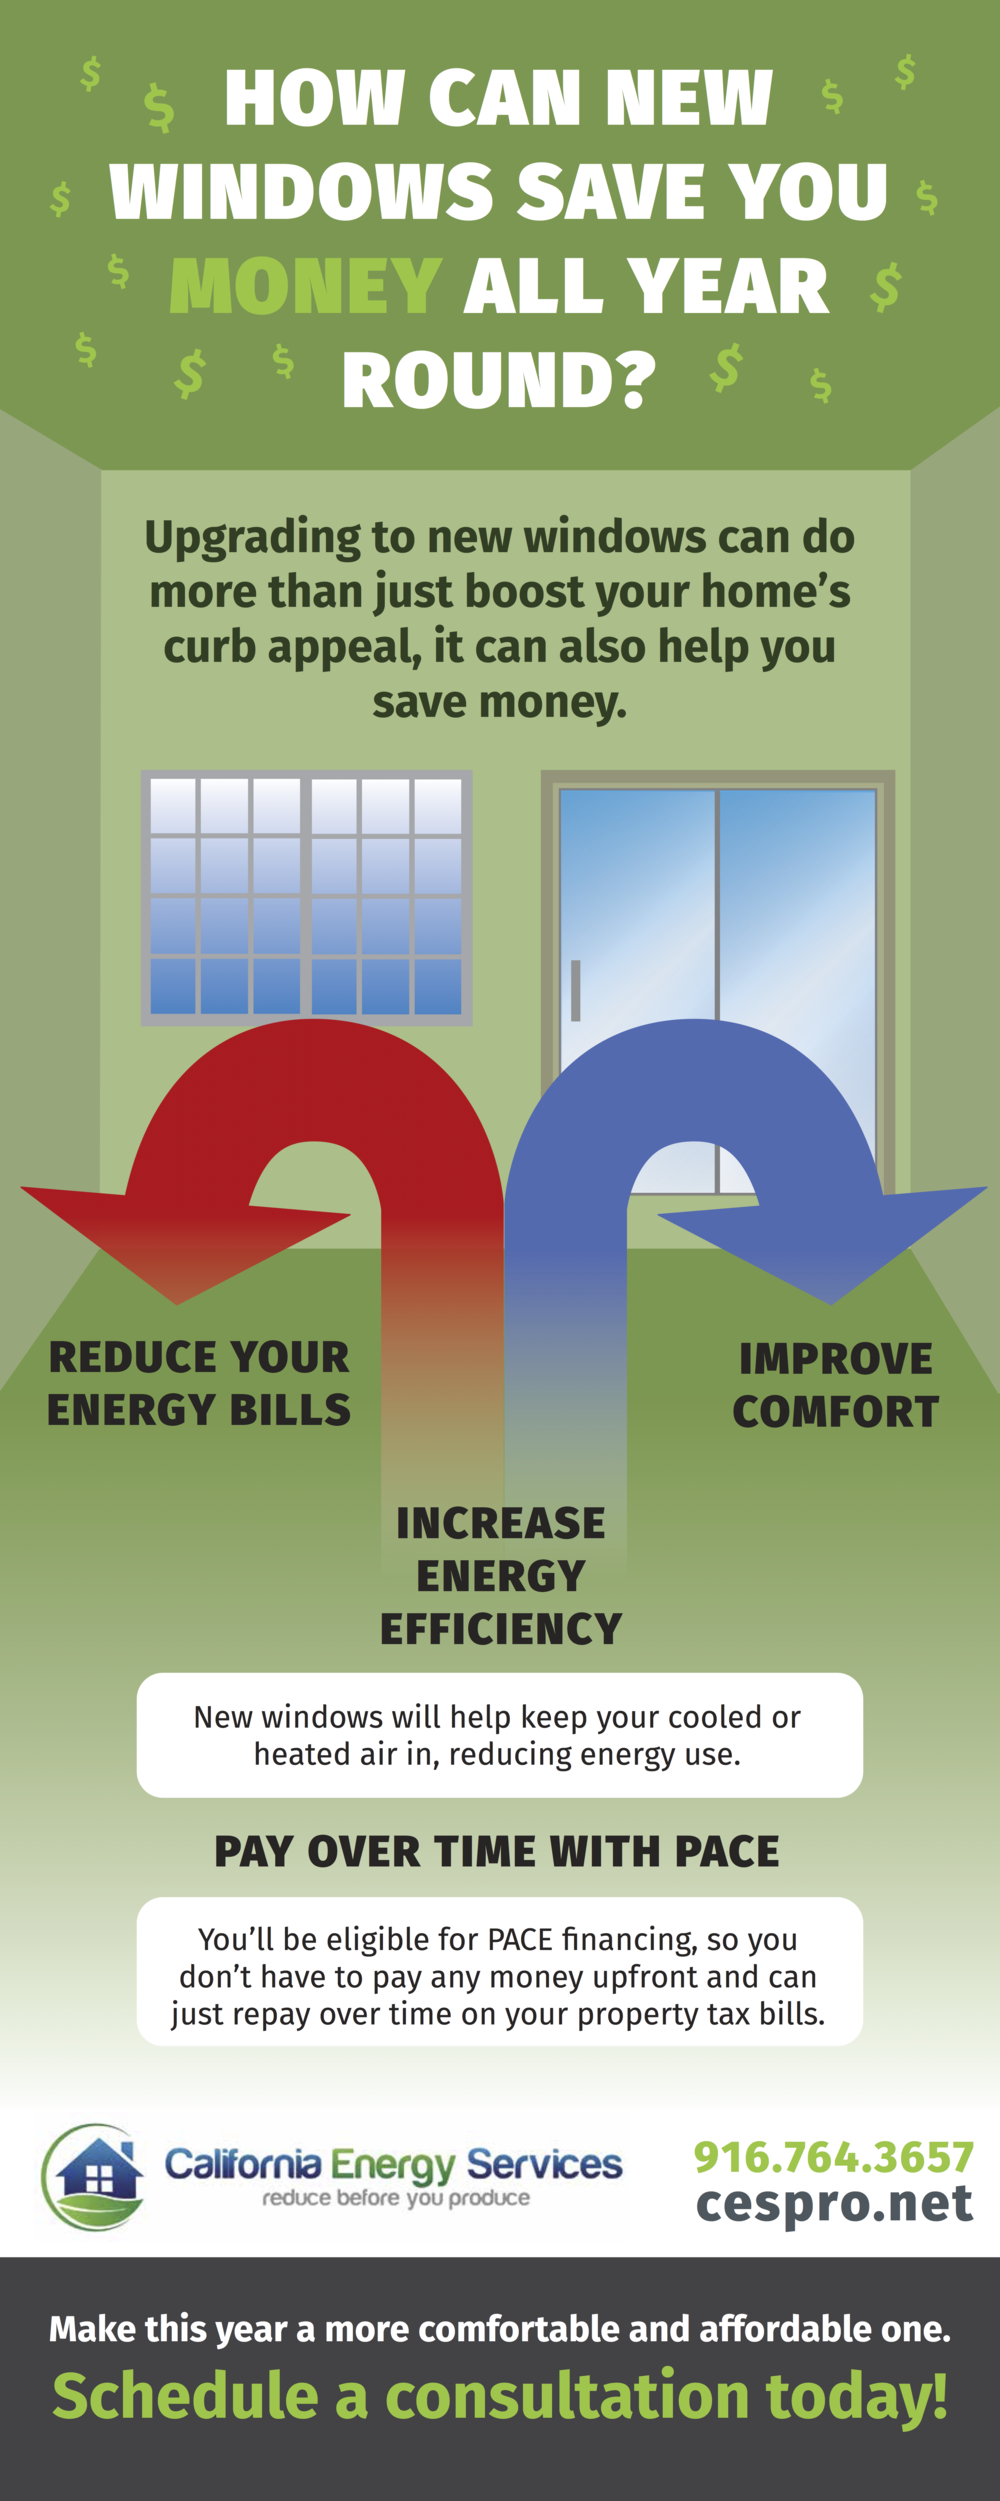 Save Money & Energy This Winter With New Windows